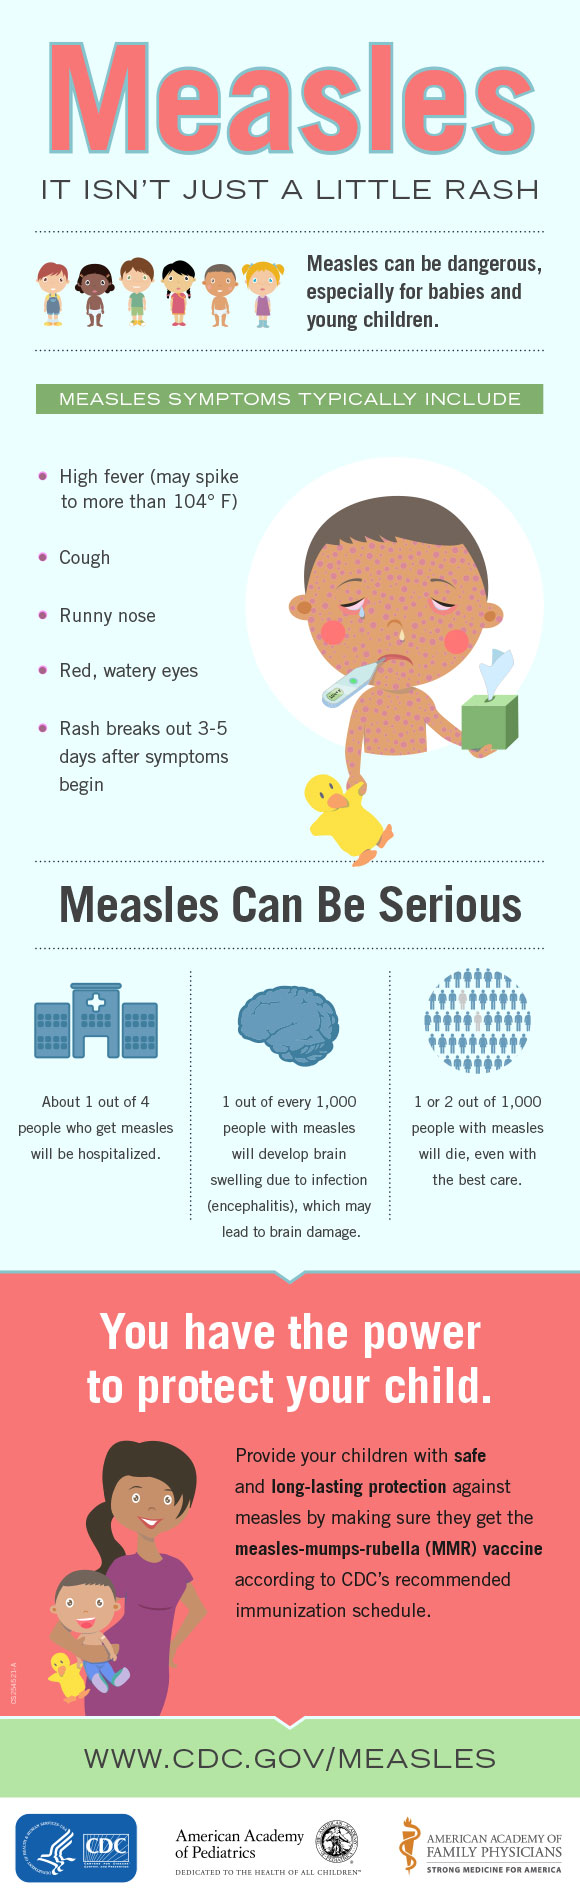 HEA-measles-infographic-web